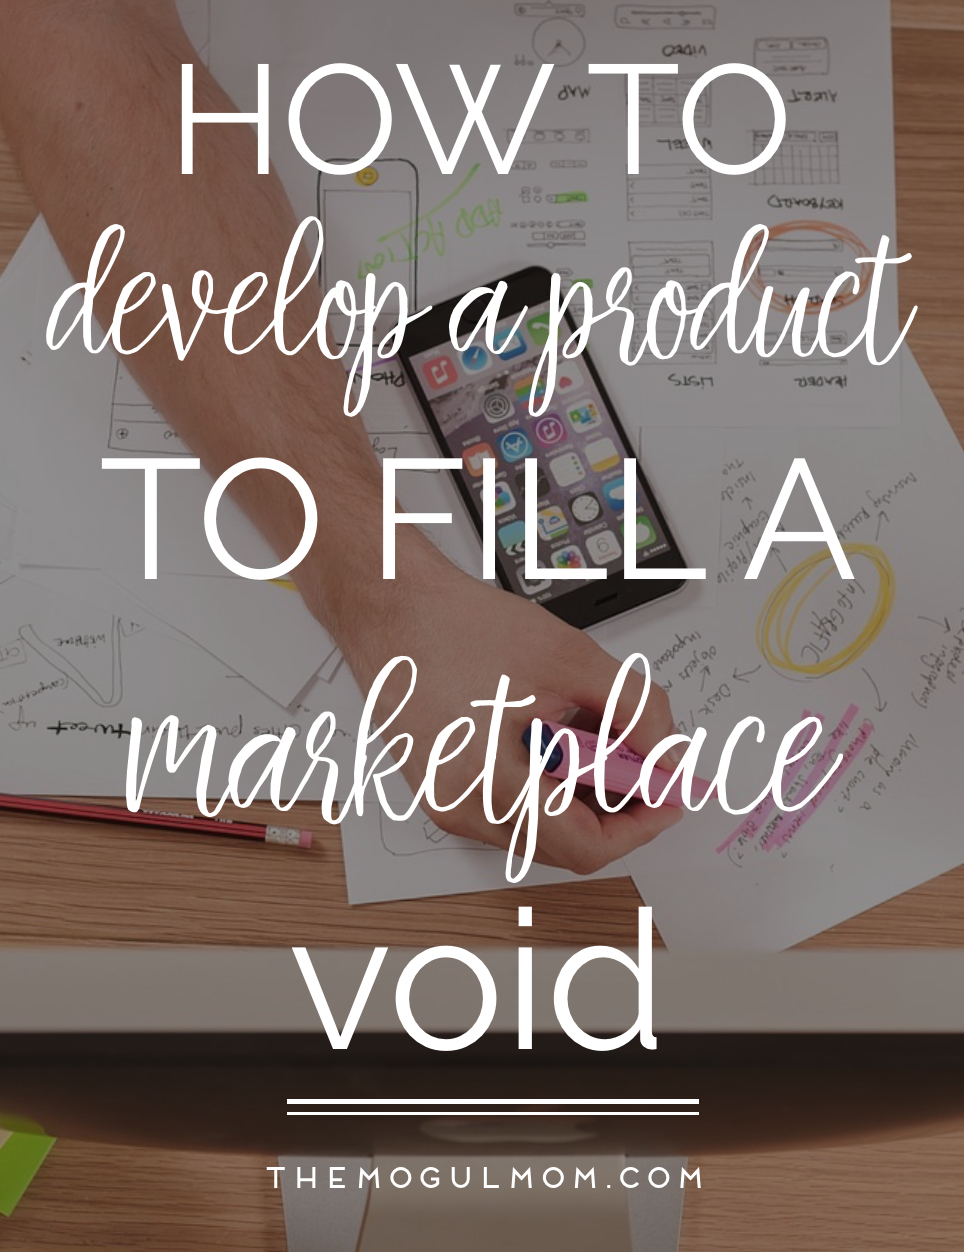 How To Develop A Product To Fill A Marketplace Void - The Mogul ...